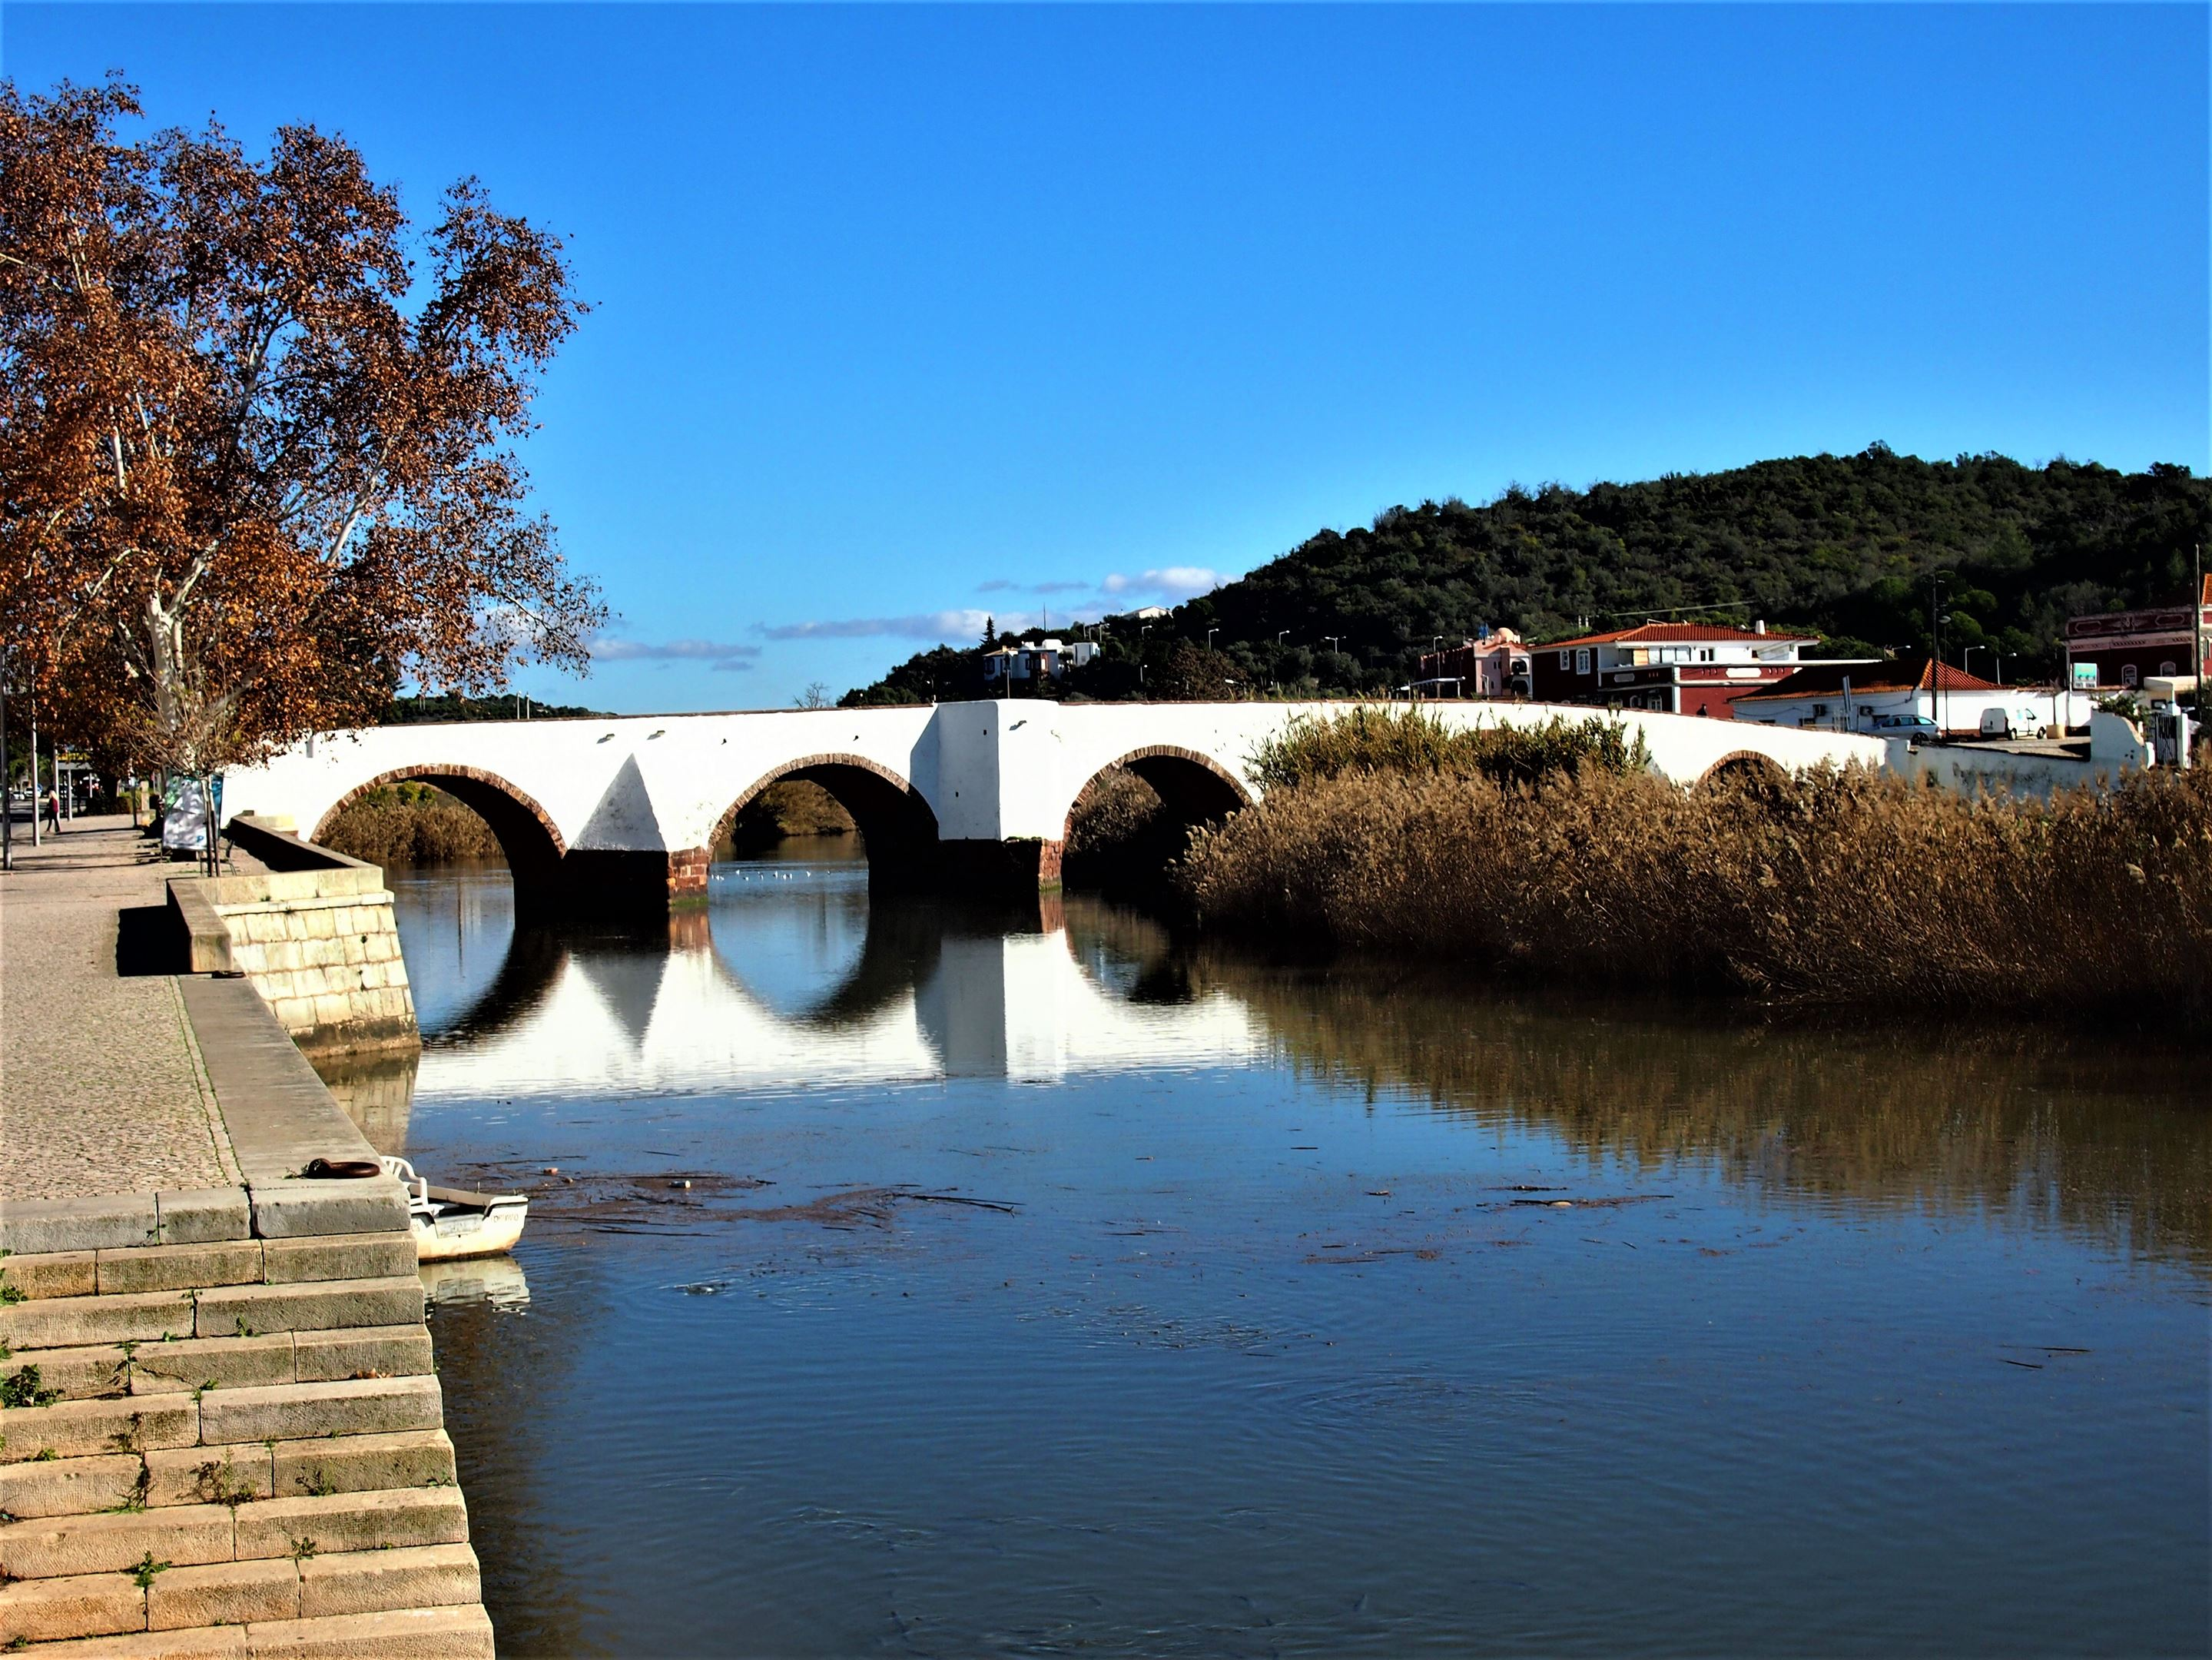 The Arade River in Silves flowing under the Roman Bridge.